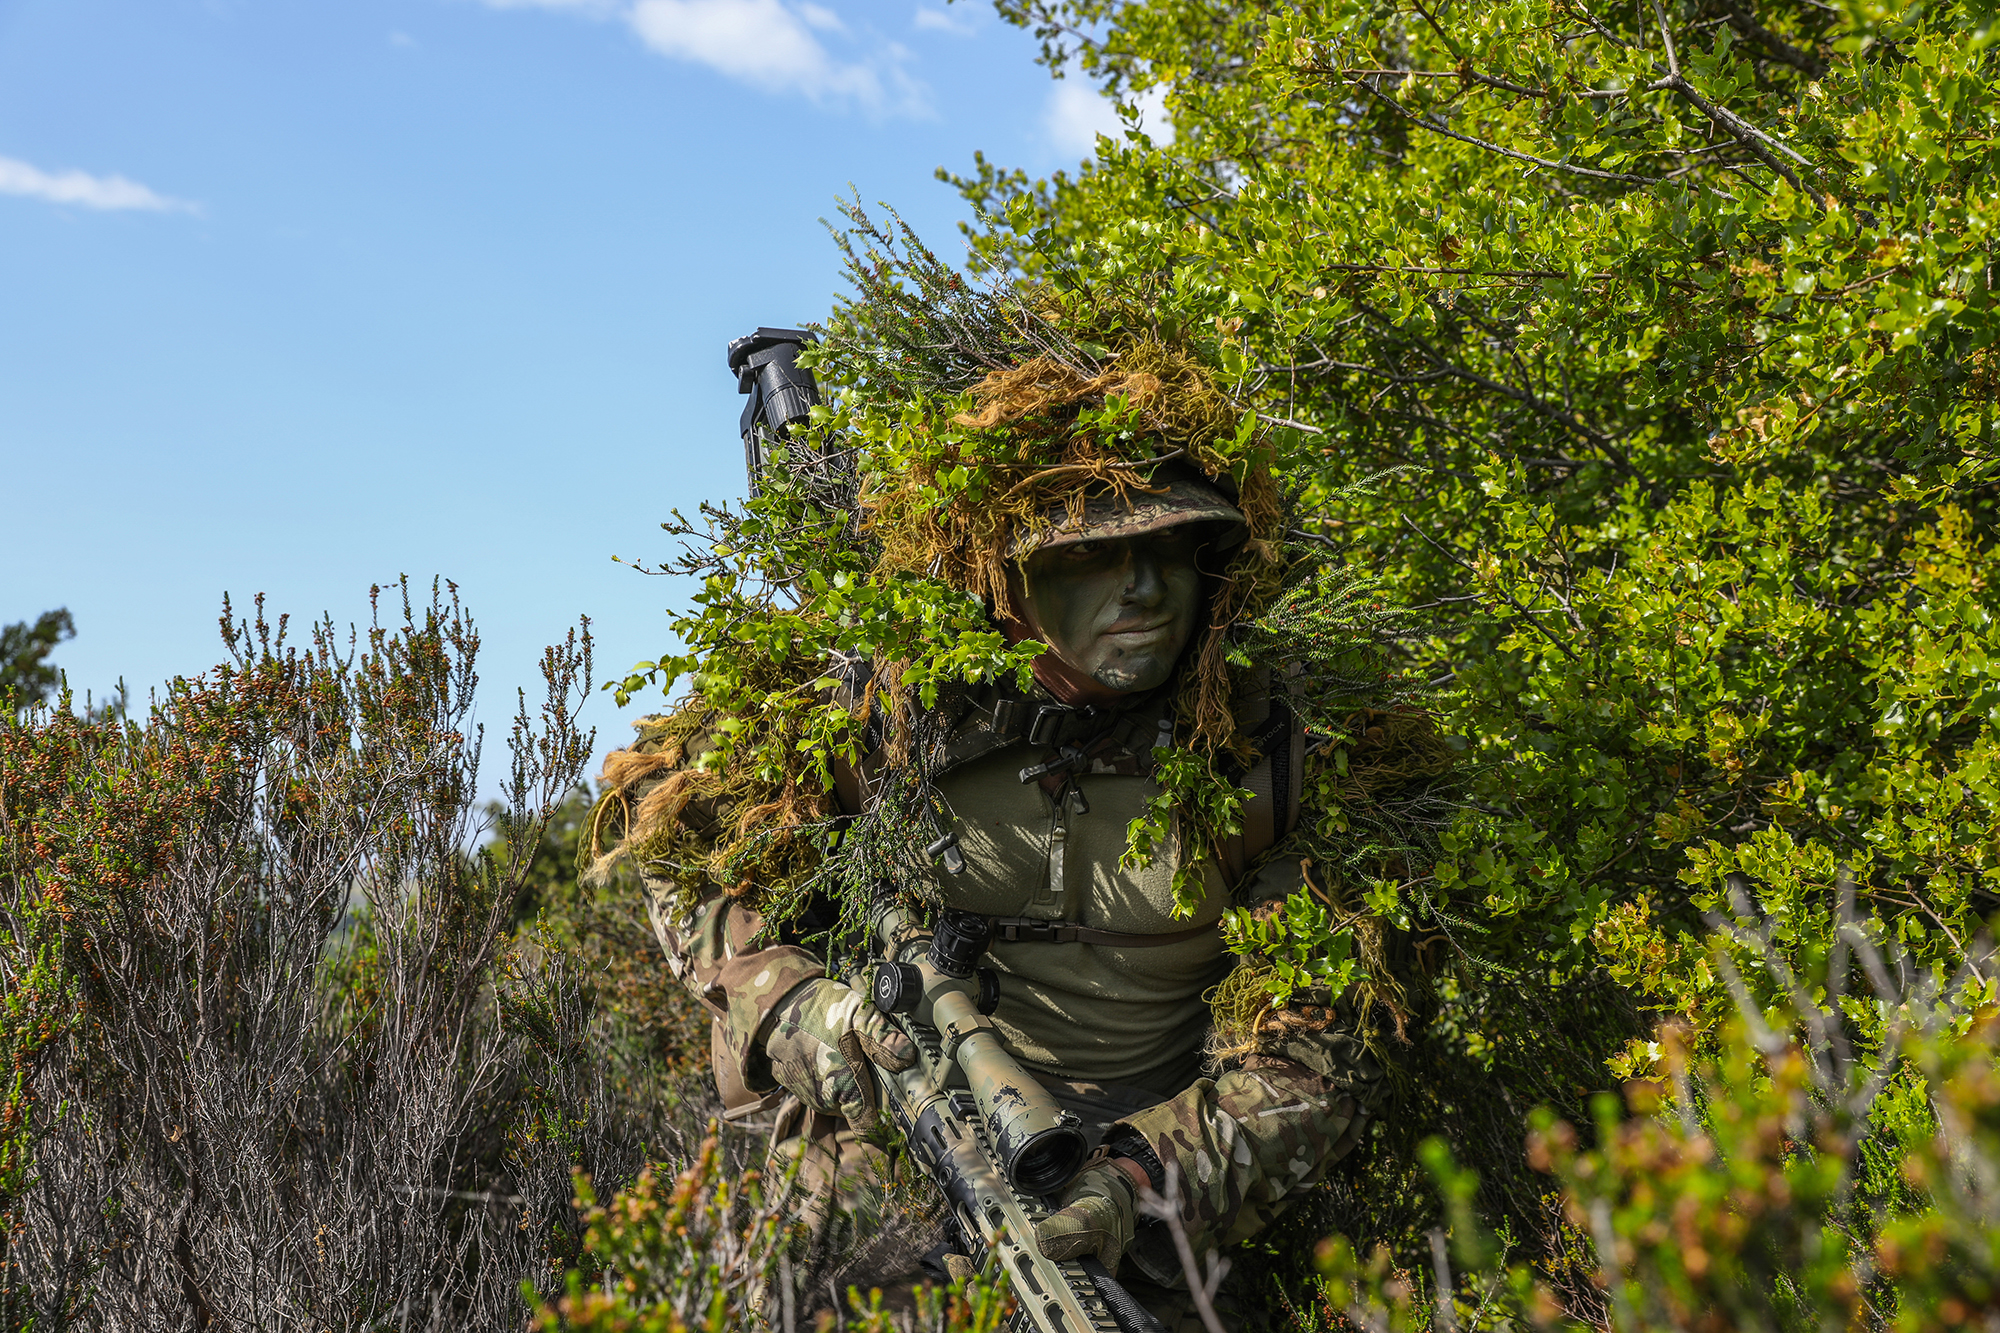 Alabama Army National Guardsman Spc. Dexter Hanson meshes his ghillie suit with the surrounding brush for better concealment during a training exercise in Xanthi, Greece, May 18, 2021. (Sgt. Samuel Hartley/Army)